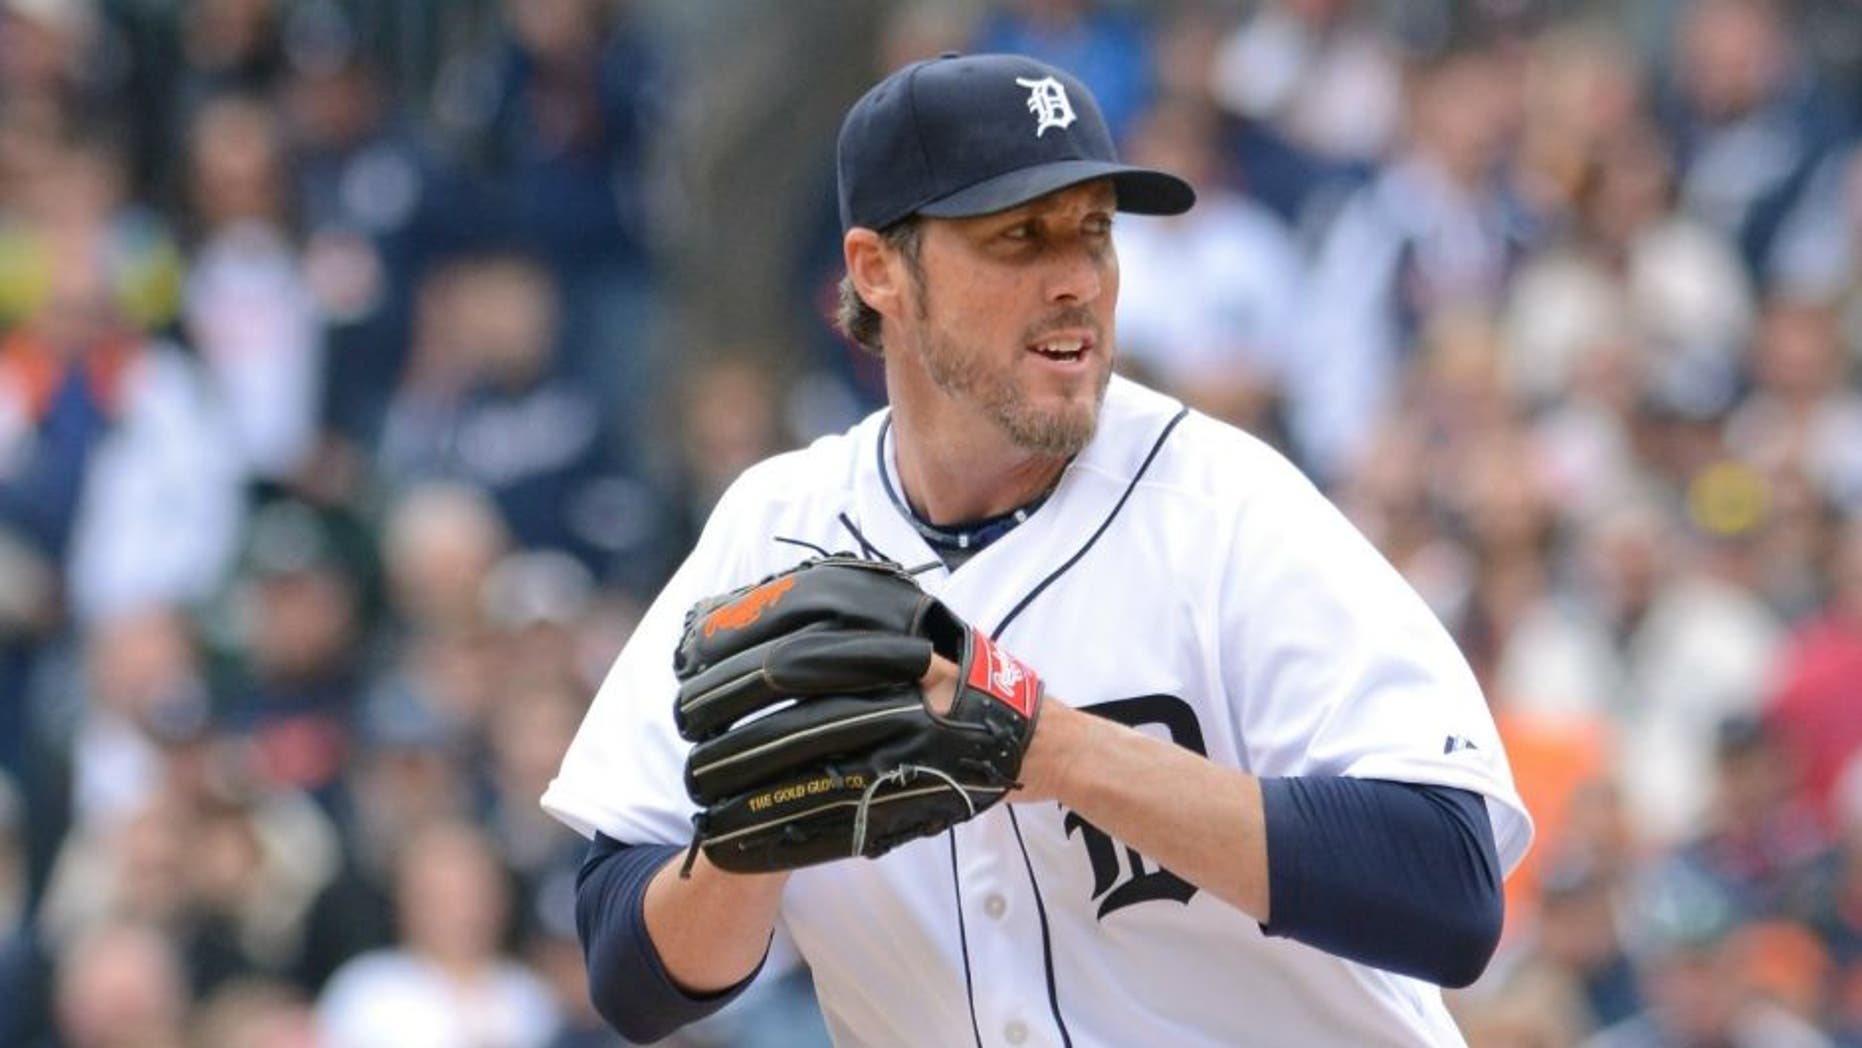 DETROIT, MI - APRIL 06: Joe Nathan #36 of the Detroit Tigers pitches during the Opening Day game against the Minnesota Twins at Comerica Park on April 6, 2015 in Detroit, Michigan. The Tigers defeated the Twins 4-0. (Photo by Mark Cunningham/MLB Photos via Getty Images)